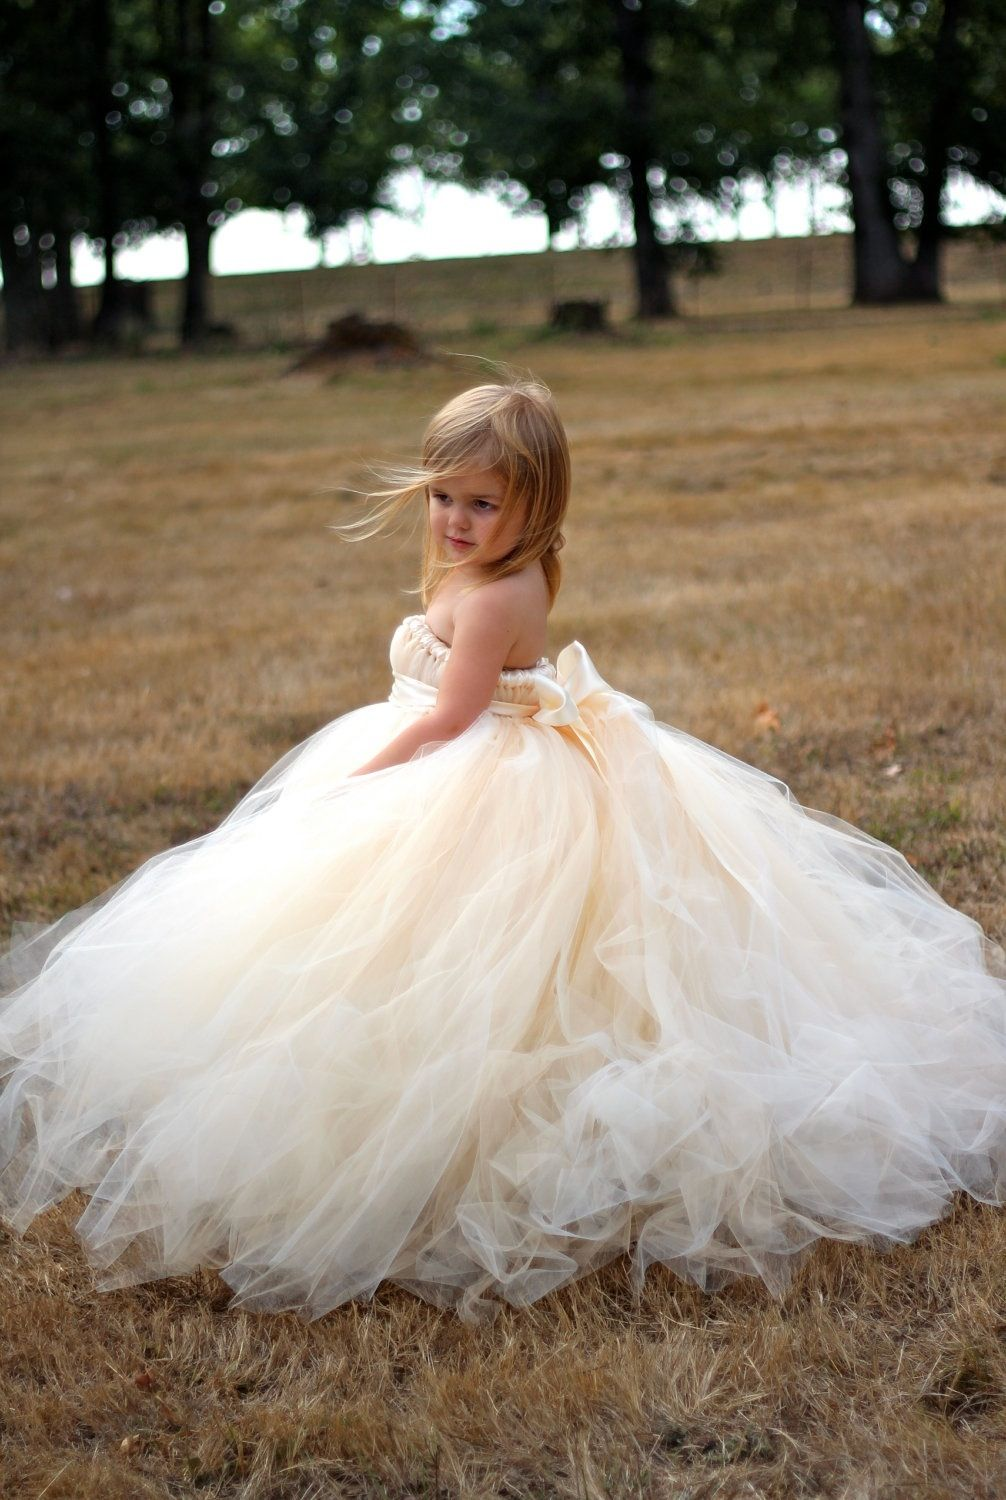 Girls wedding dress  Lil angel  My Happily Ever Afteruc  Pinterest  Angel Flower girl